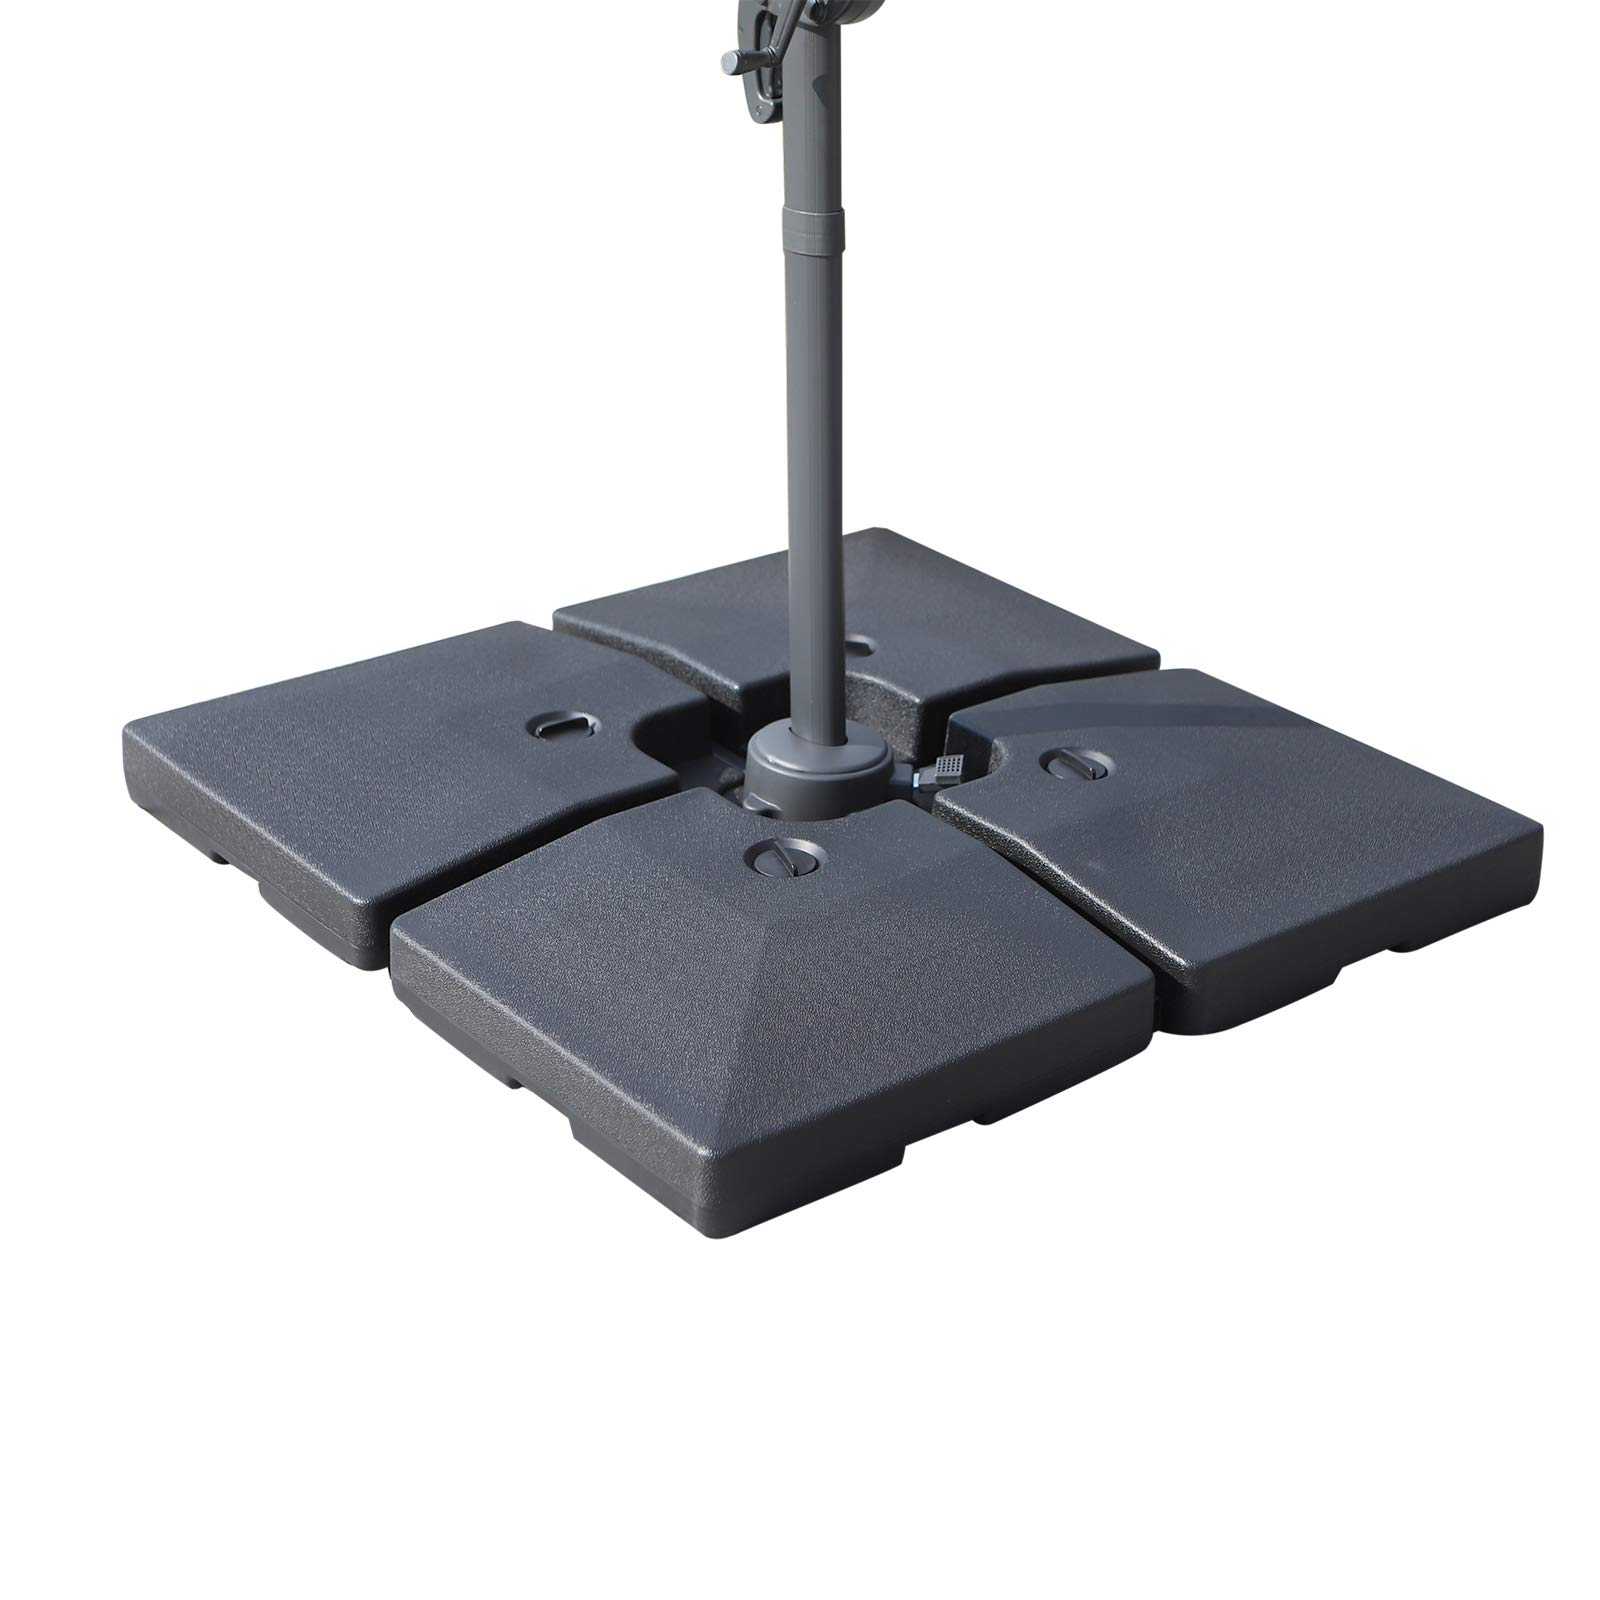 Outsunny Large 4 Piece Square Fillable Weighted Offset Market Patio Umbrella Base